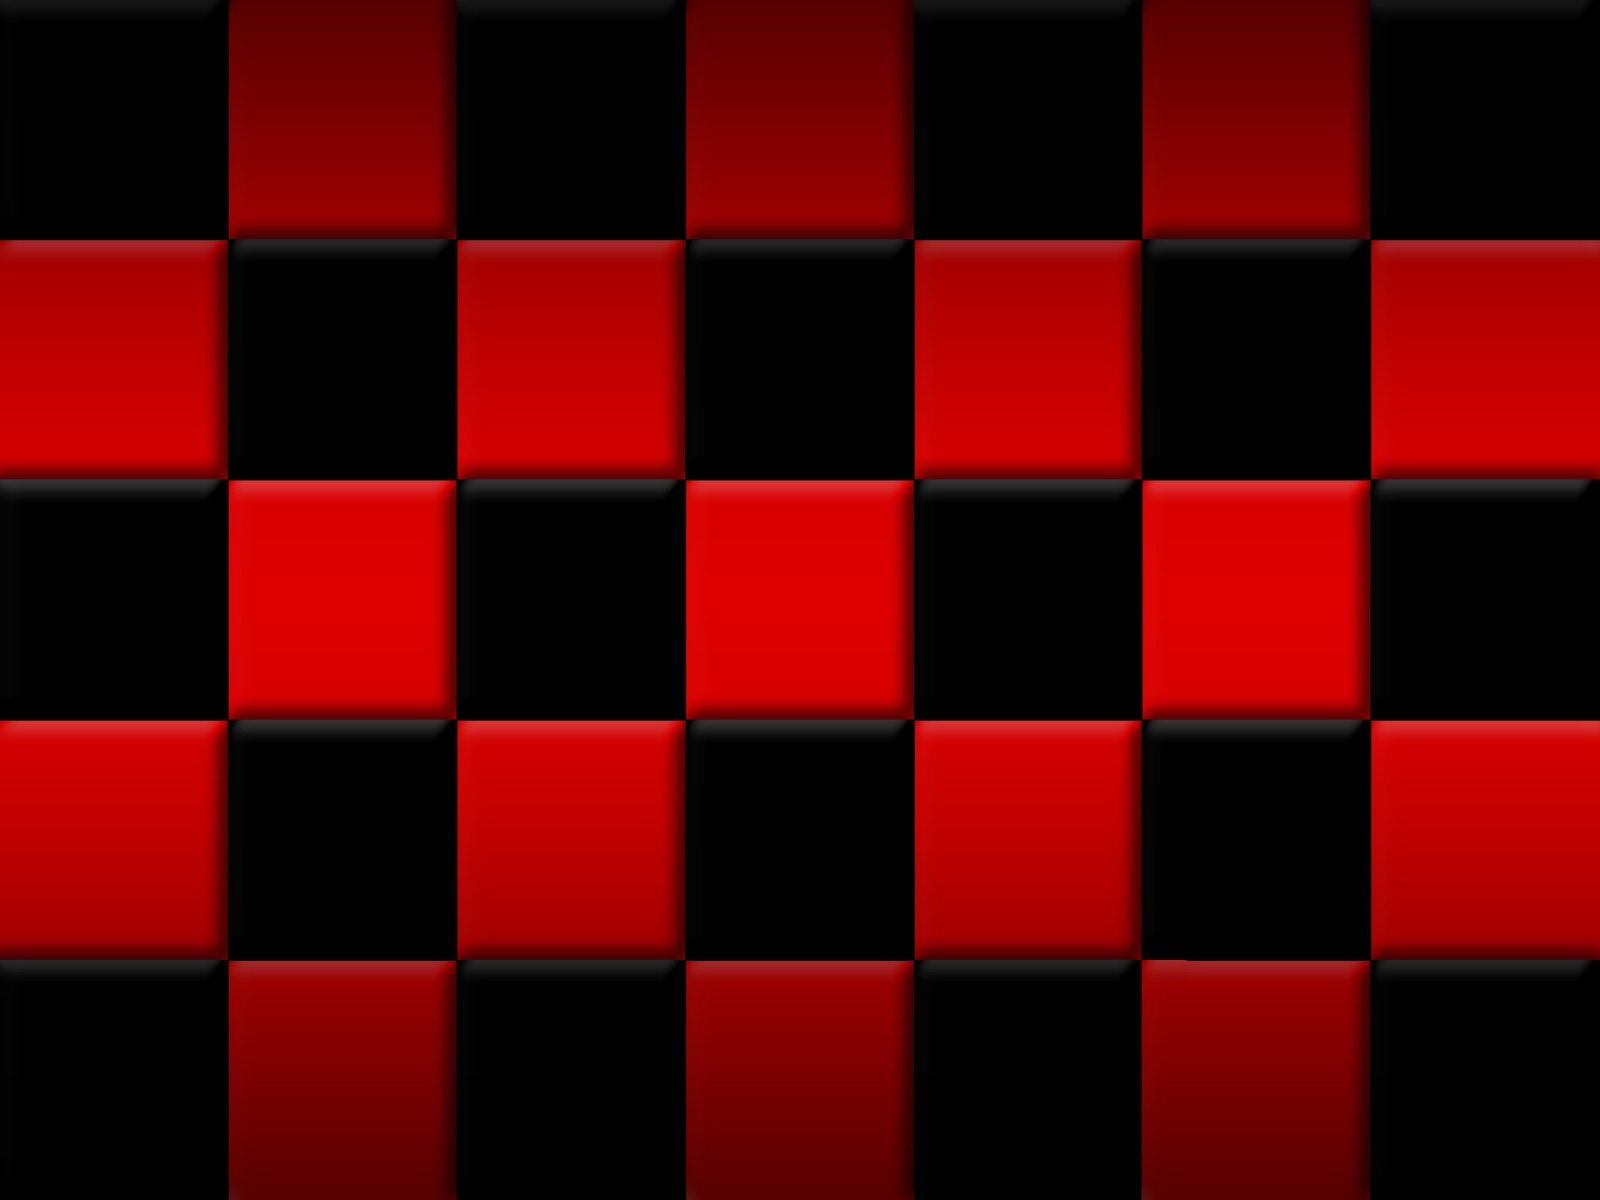 Black Checkered Background Free Stock Photo Wallpaper and Red 1600x1200px